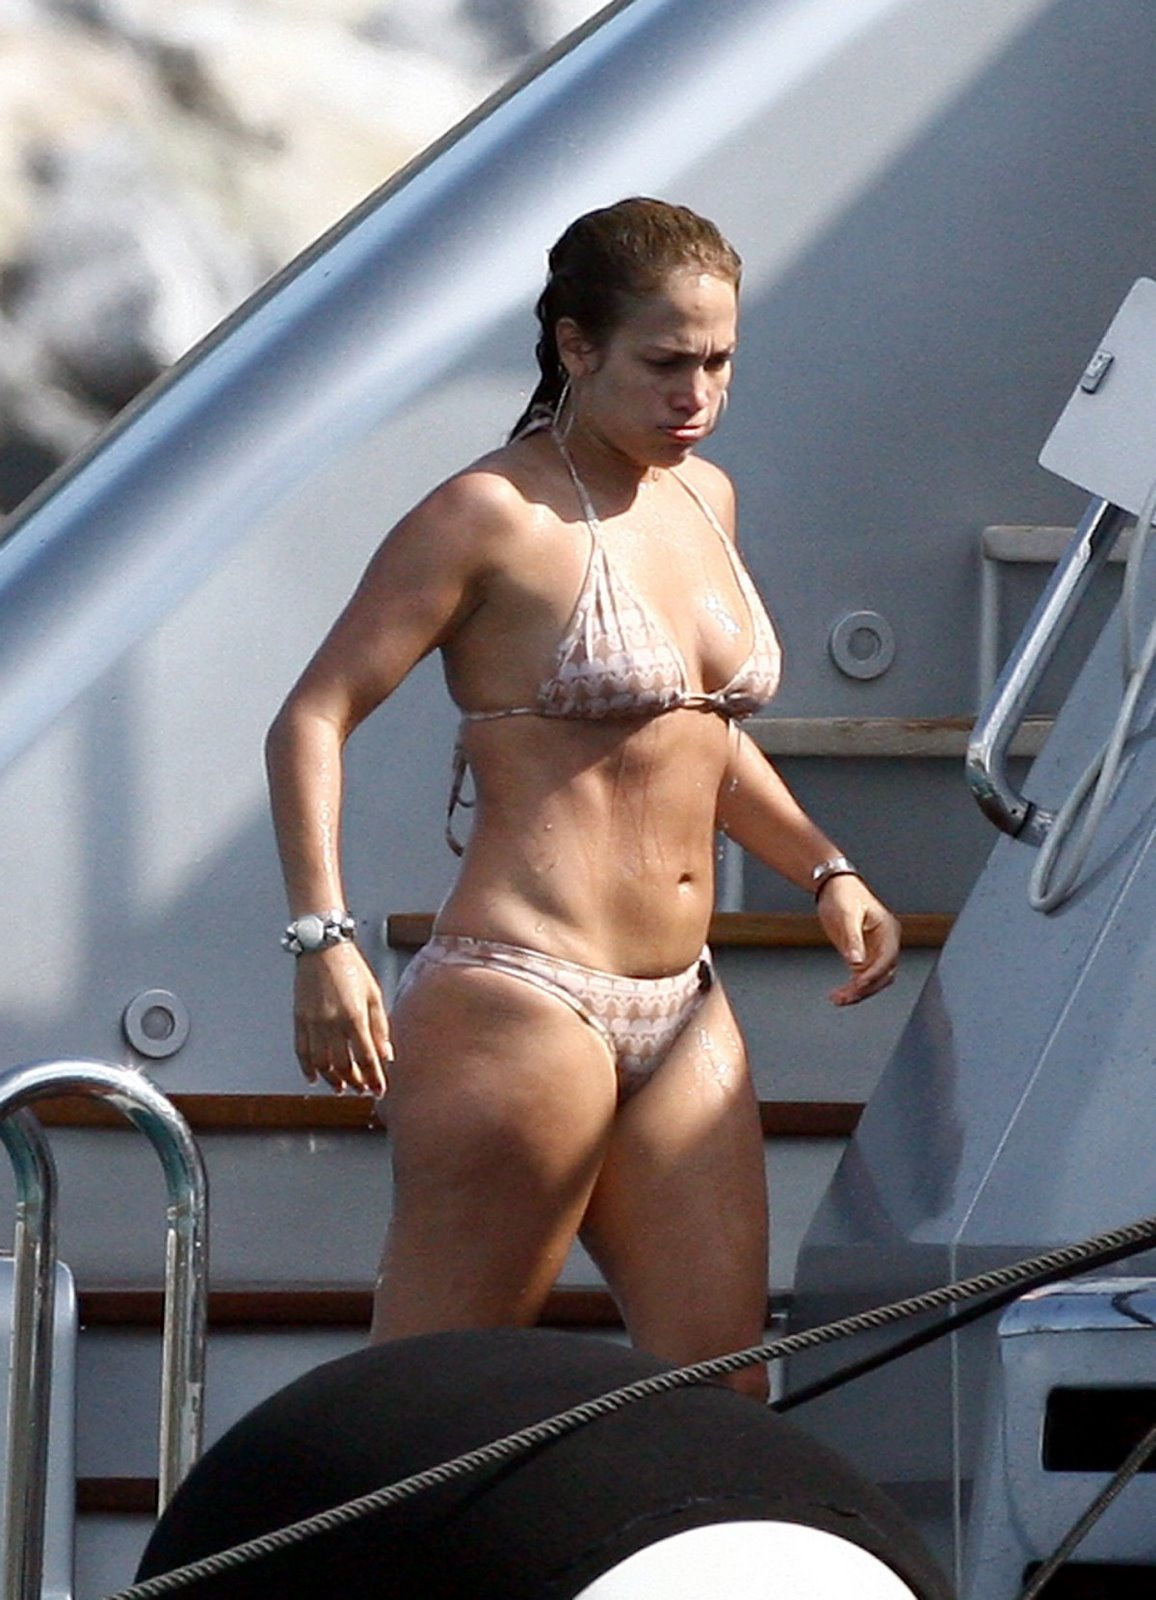 Tags:Jennifer Lopez Cool Photos, She Has not a Charming body ,She is so ...